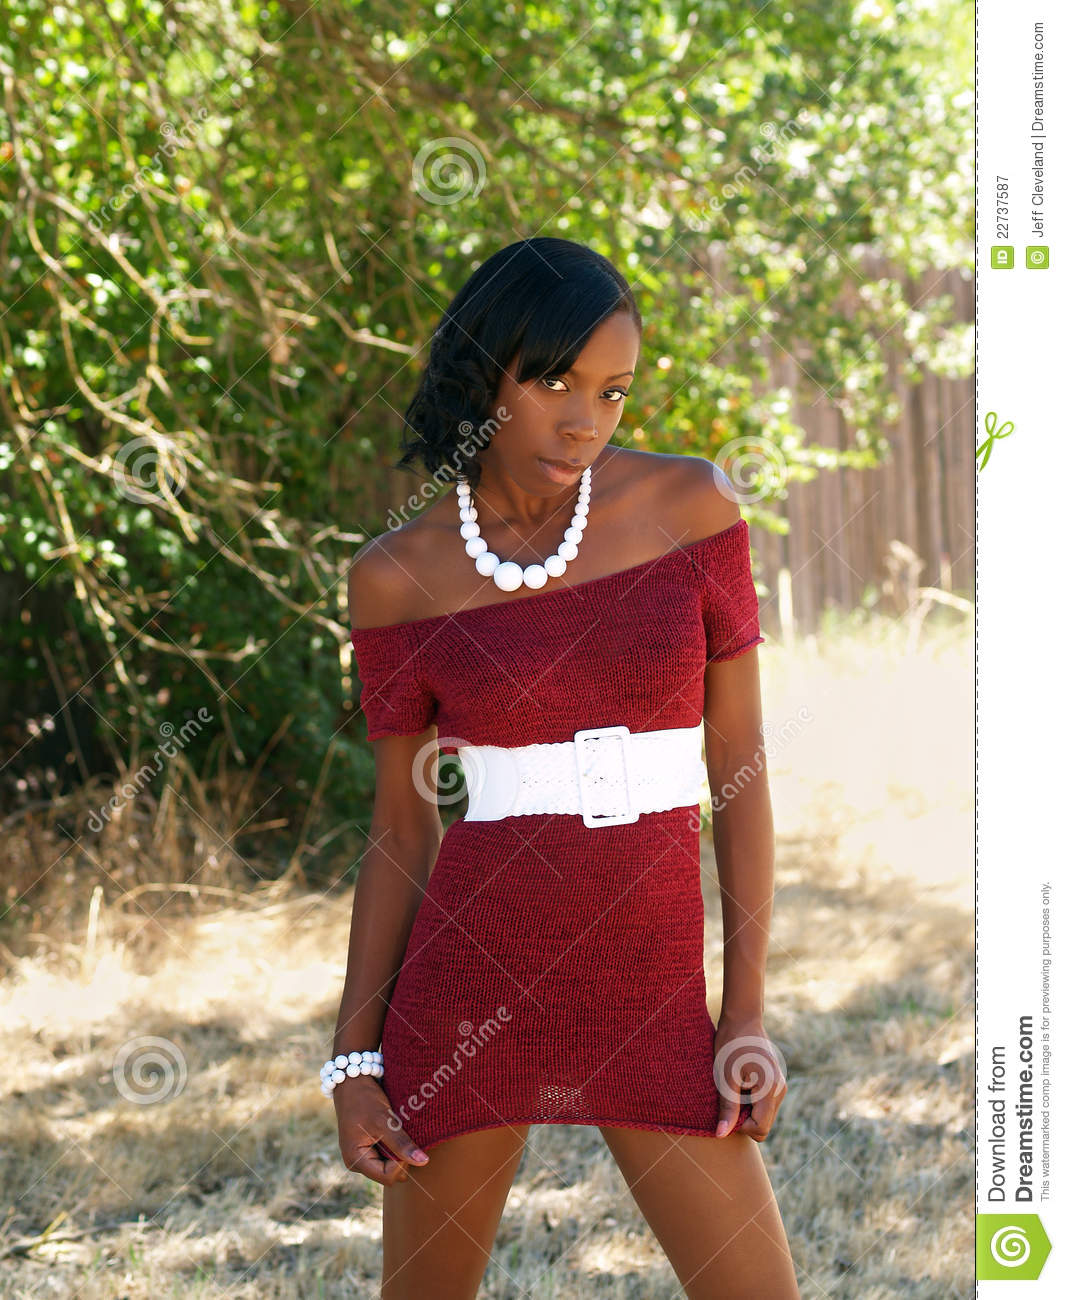 6aeb3fbd3f007 Young Skinny Black Woman Red Knit Dress Stock Image - Image of ...